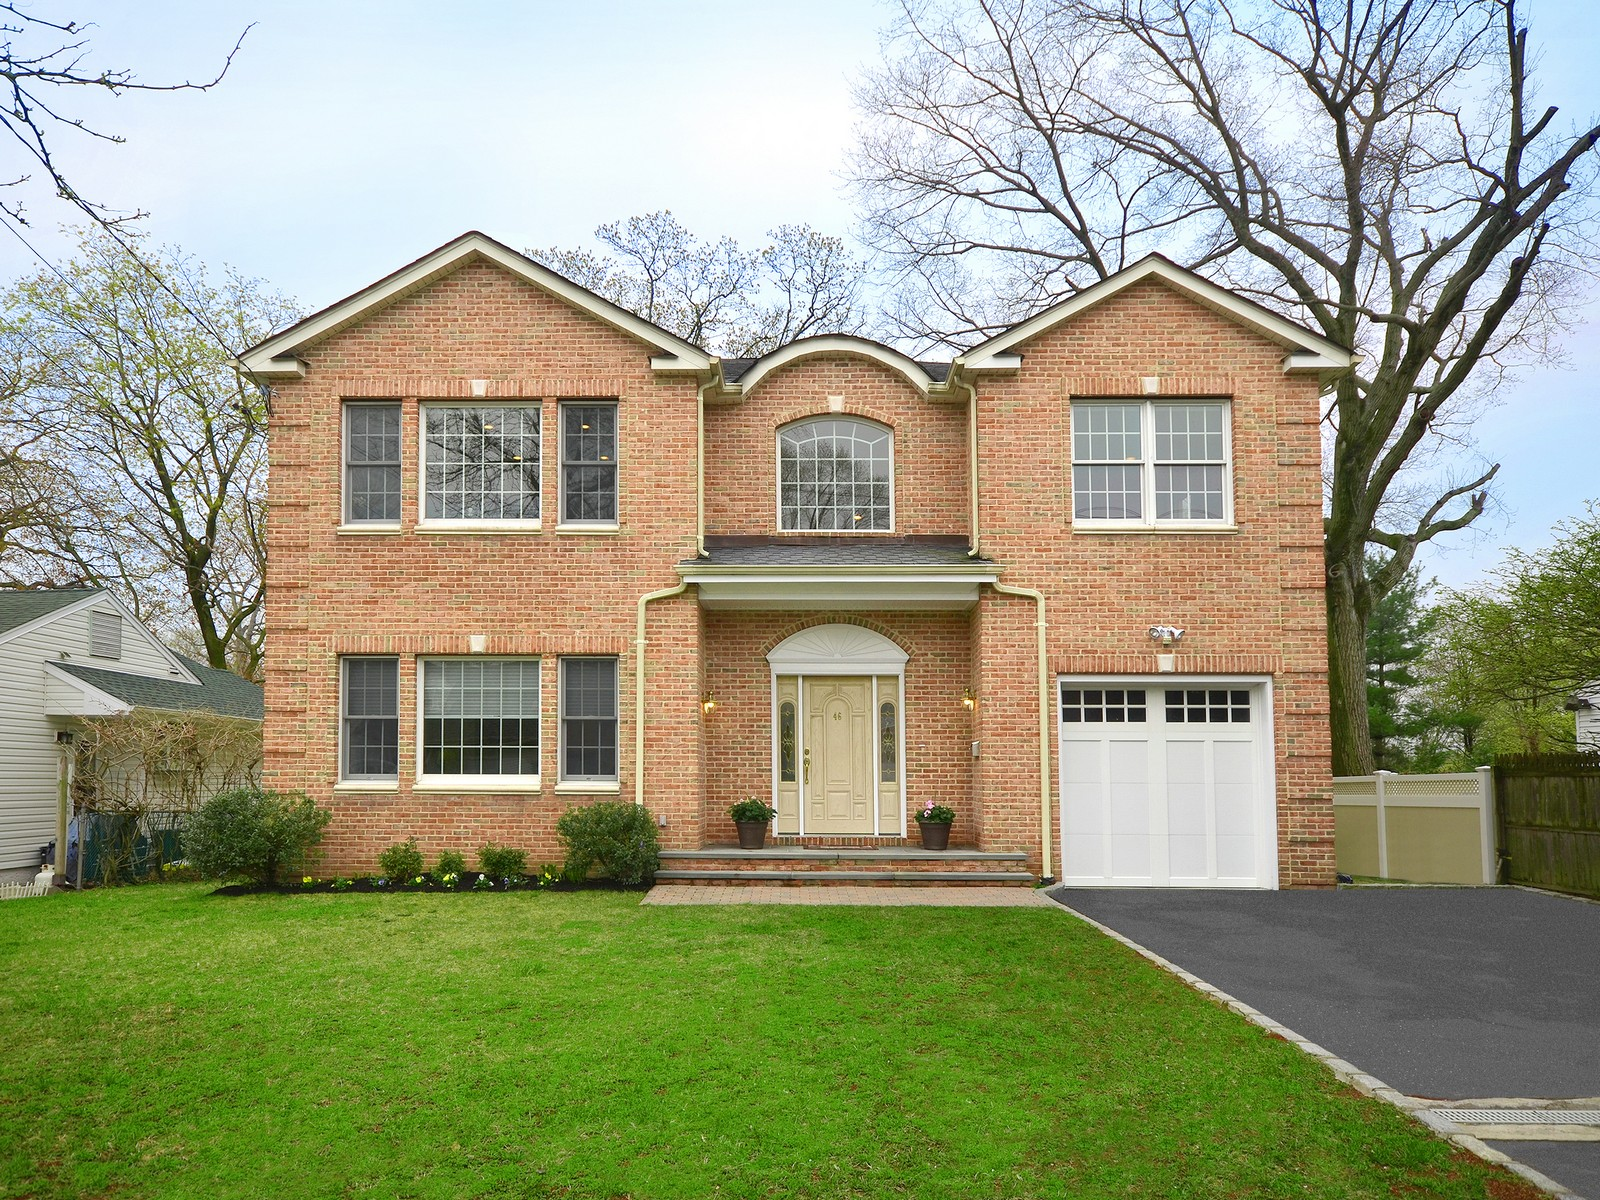 Single Family Home for Sale at Colonial 46 Radcliff Ave Port Washington, New York, 11050 United States